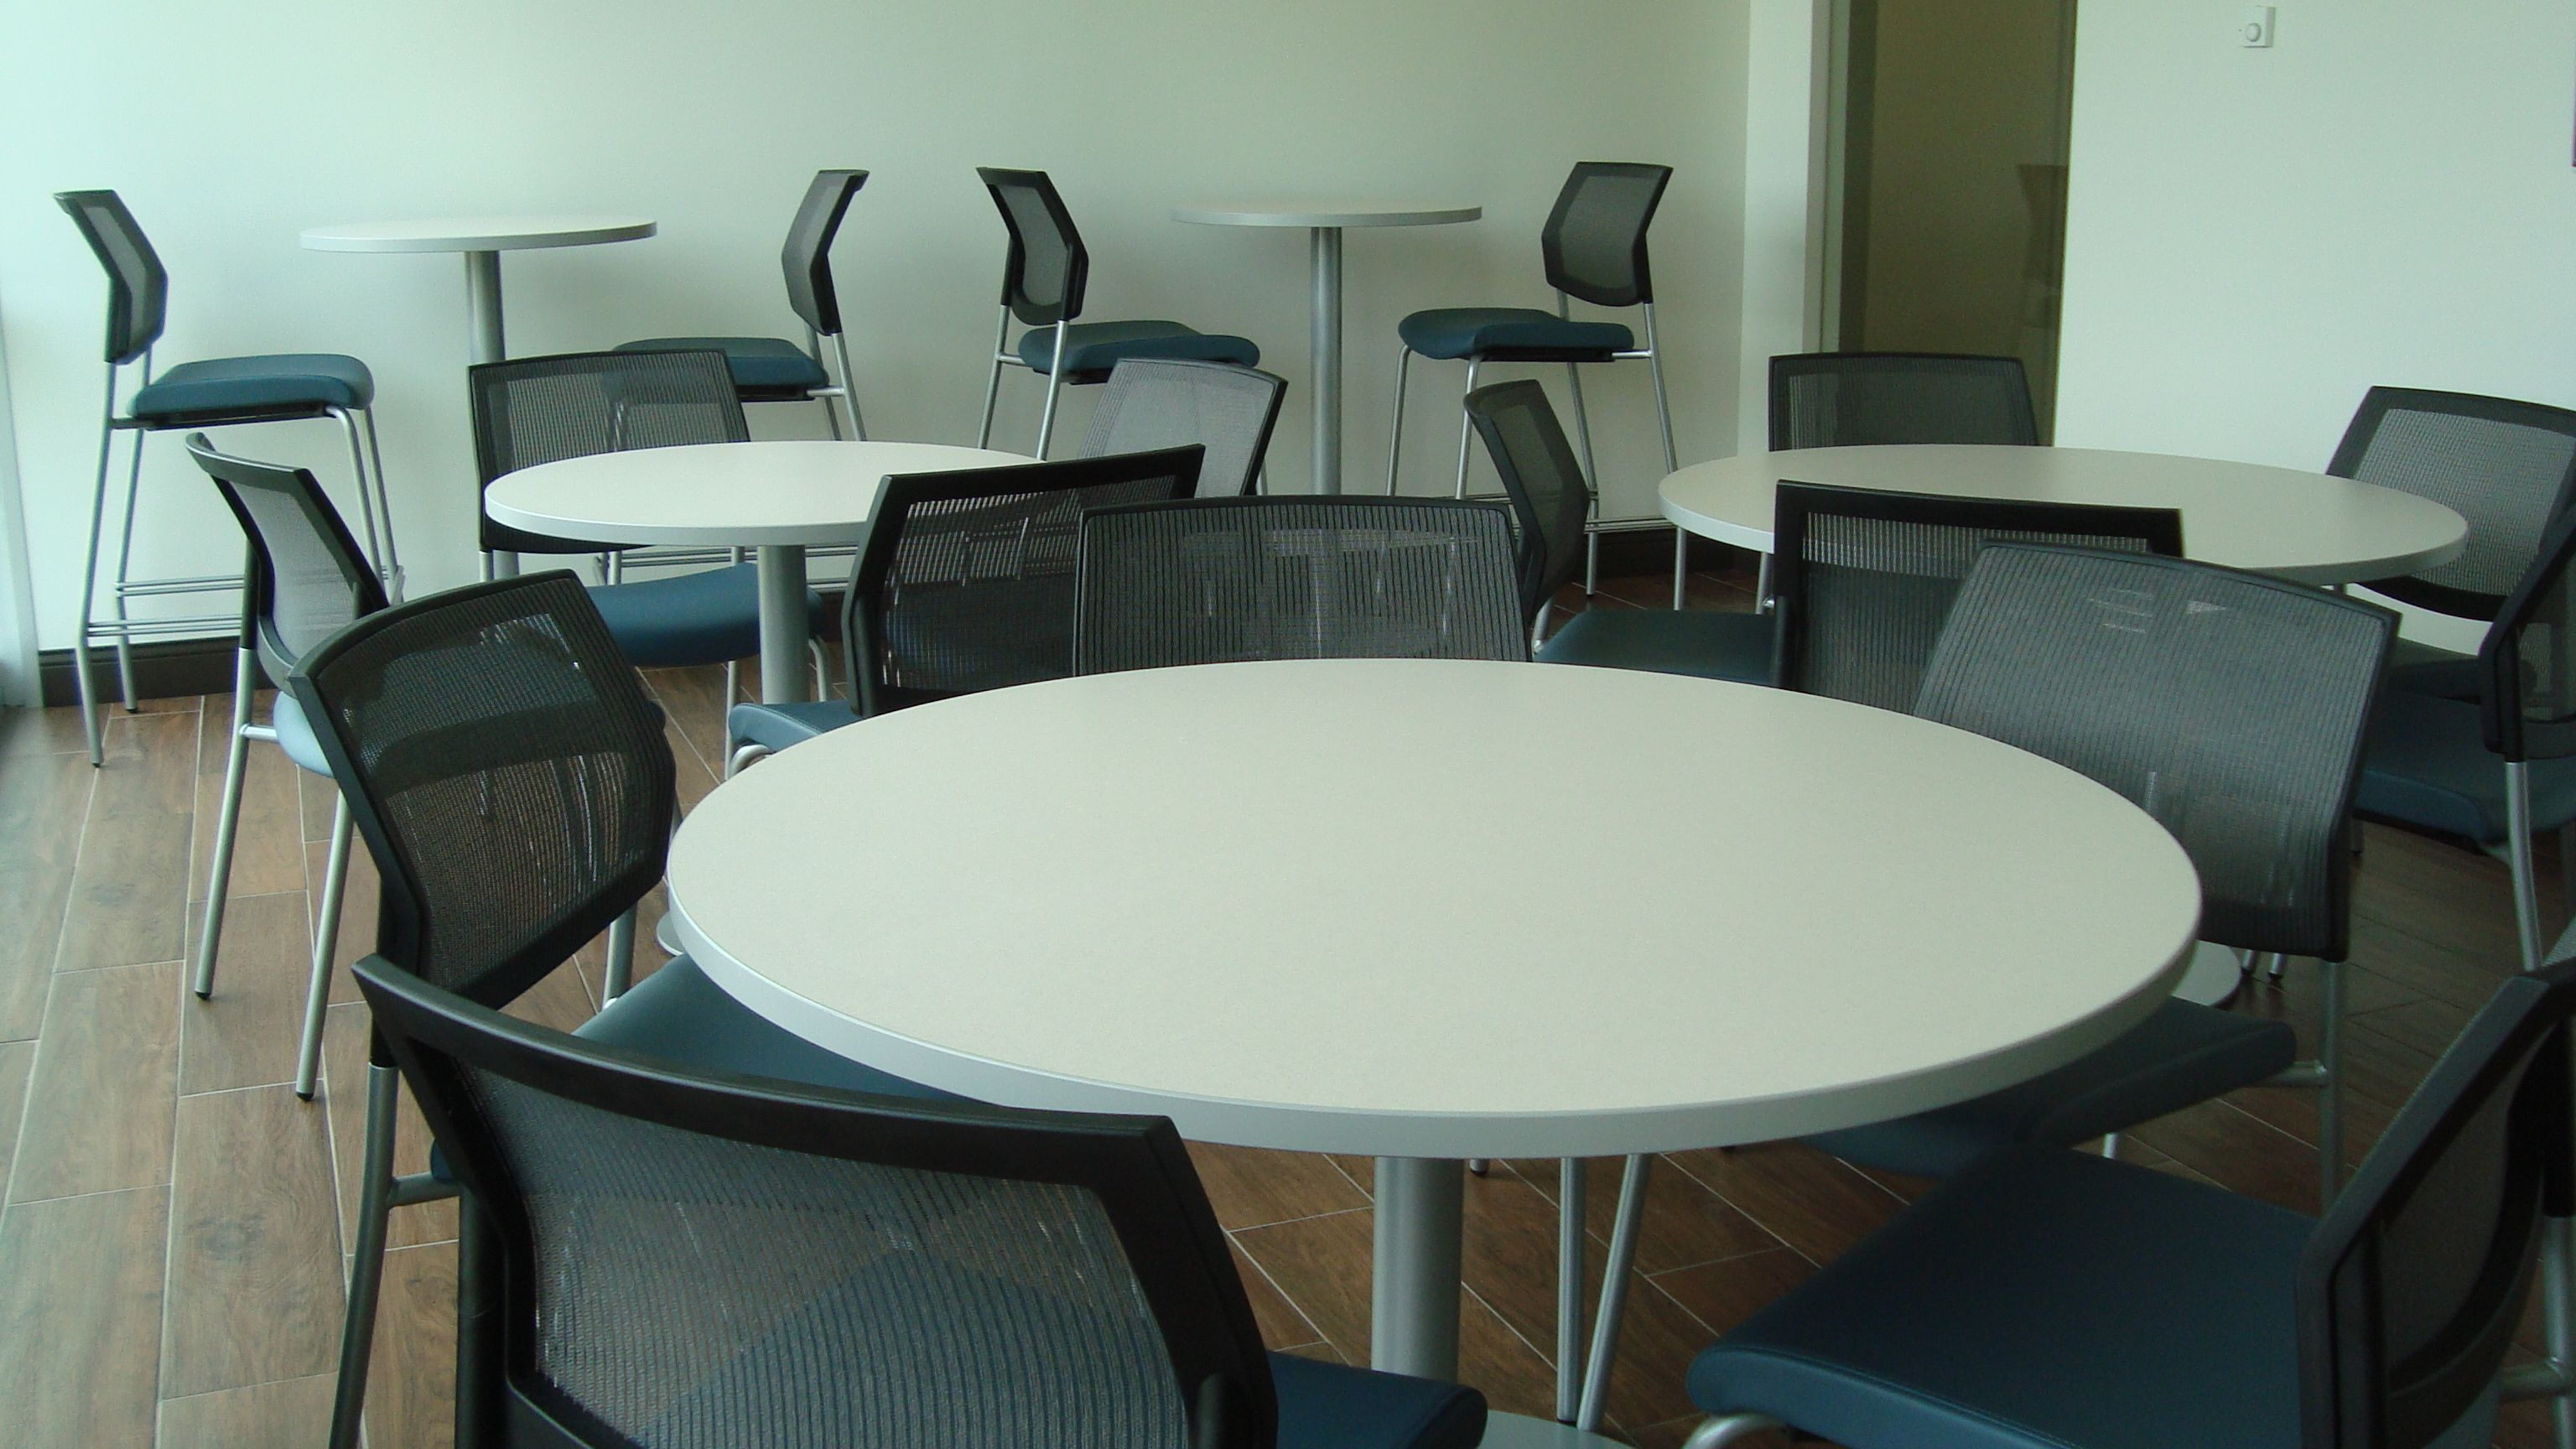 Break Room W/ Cafe And Sitting Height Tables, Sit On It Focus Mesh Back